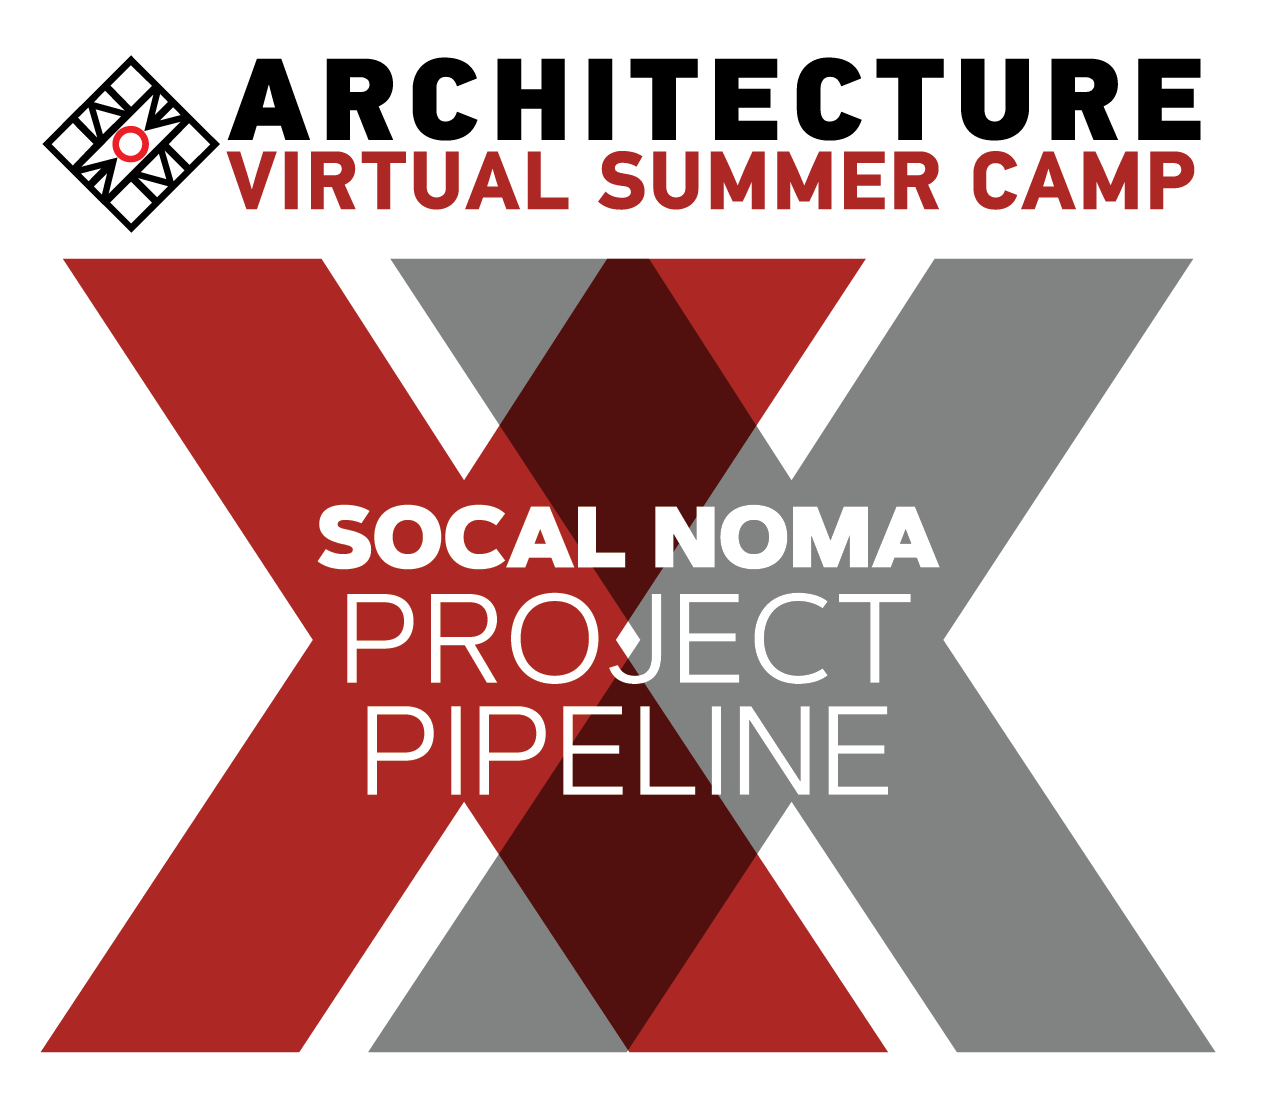 virtual summer camp 2020 logo